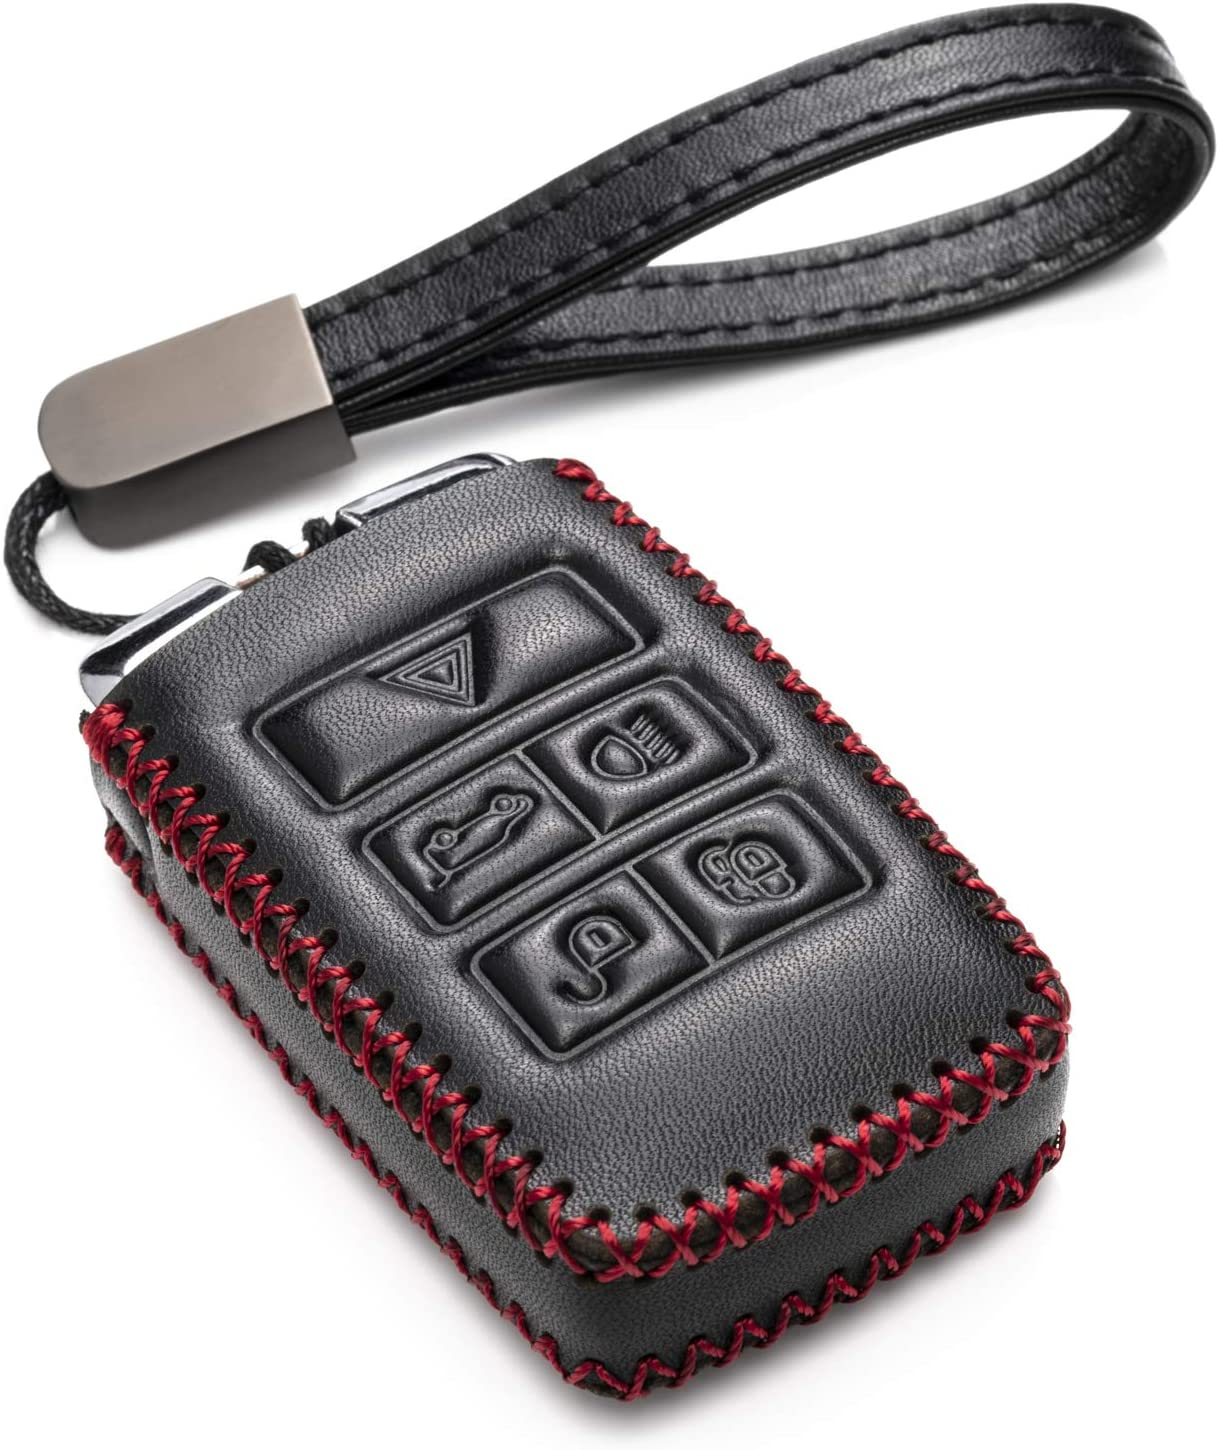 Range Rover Vitodeco Genuine Leather Smart Key Fob Case Cover Protector with Leather Key Chain for 2017-2019 Land Rover Discovery 5-Button, Black